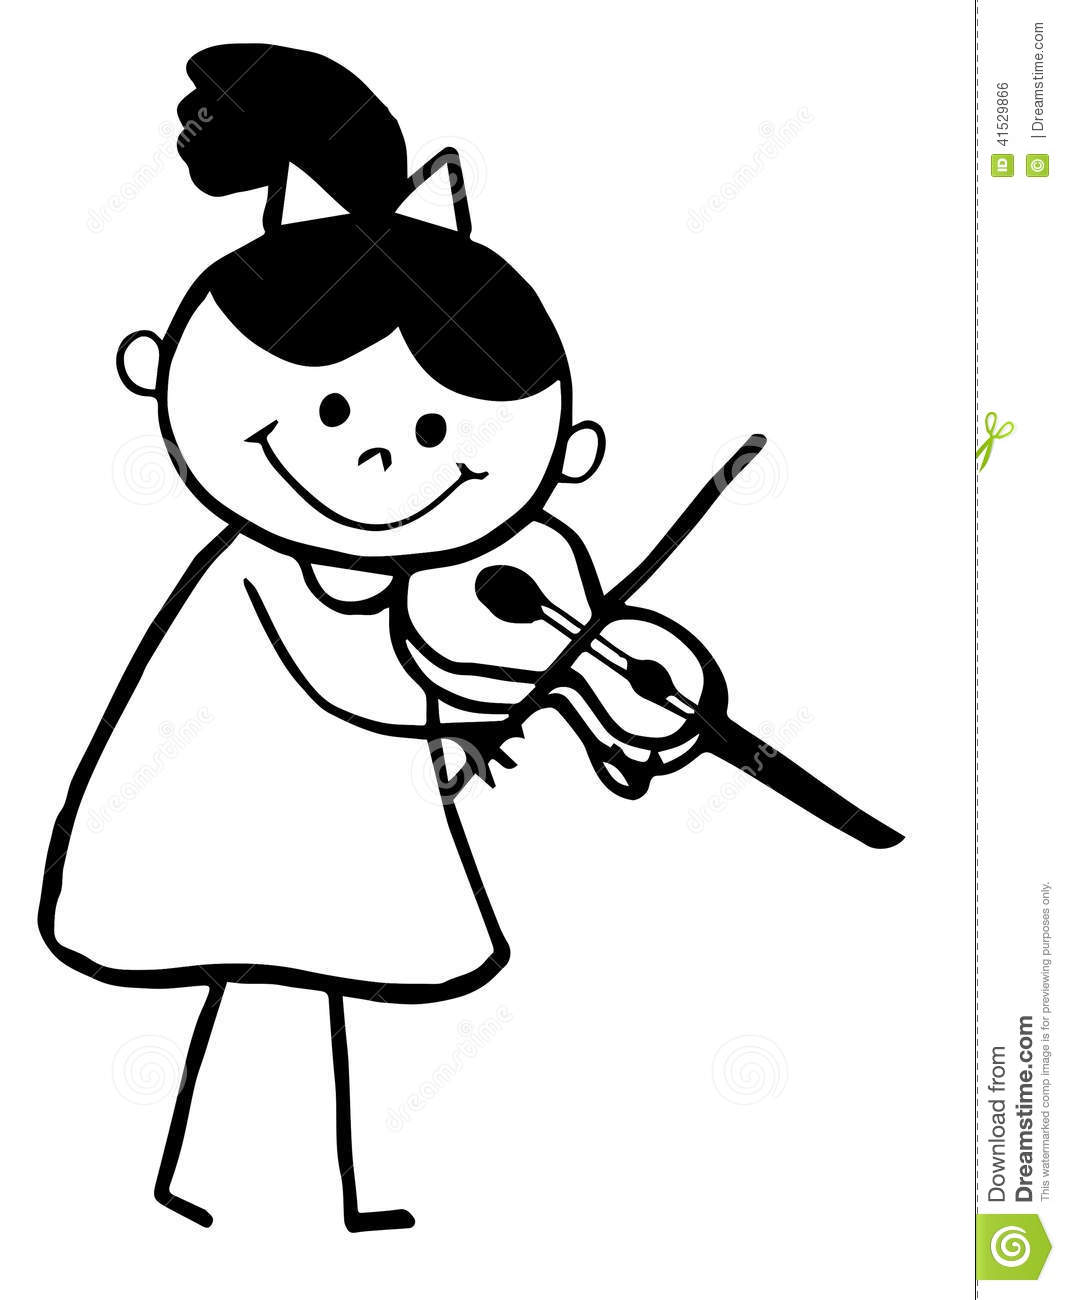 Musica besides Pentagon Outline Shape 33807 further Stock Illustration Stick Figure Love Clipart Couple Image61453849 additionally Losango also Stock Image Religion People World Cliparts Set Human Pictogram Representing Christian Muslims Buddhist Sikh Taoist Hindus Image40371901. on figure clipart